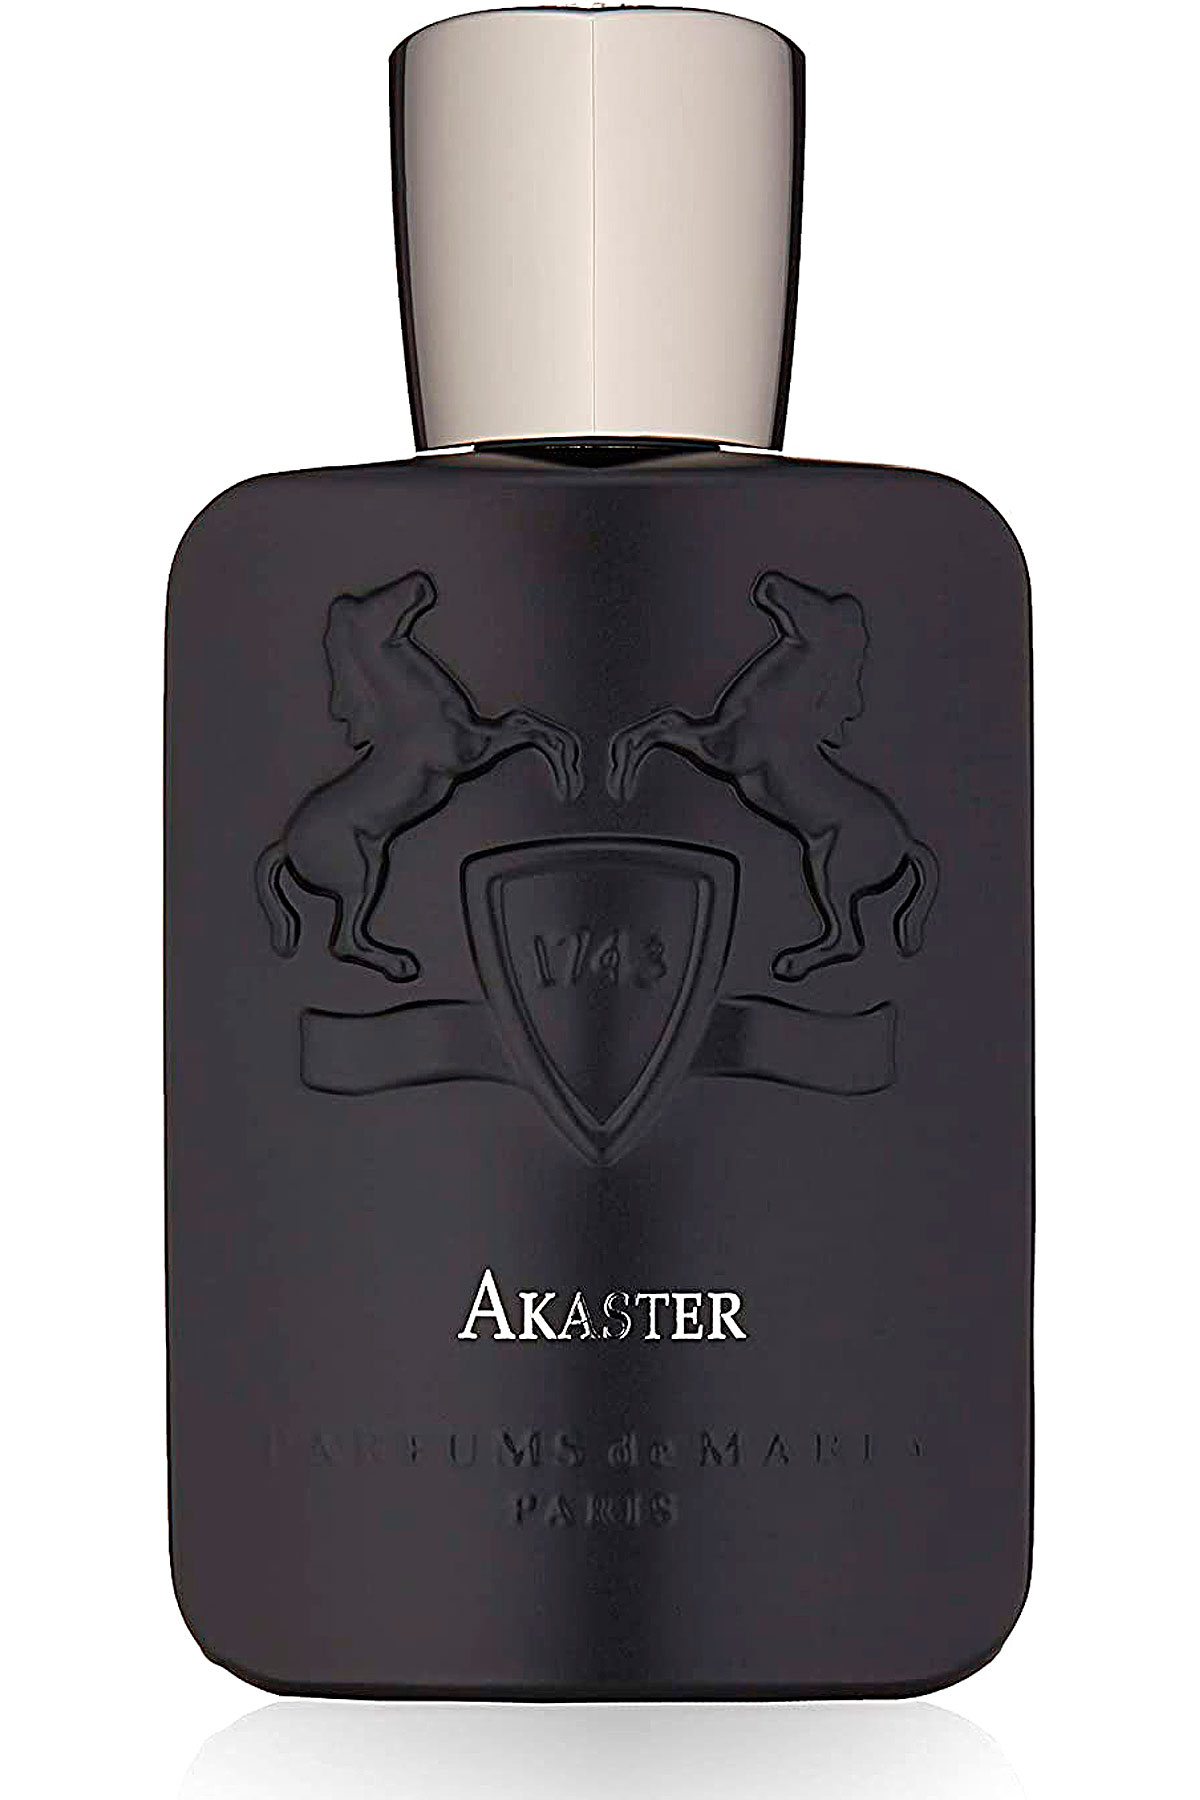 Parfums de Marly Fragrances for Men, Akaster - Eau De Parfum - 125 Ml, 2019, 125 ml